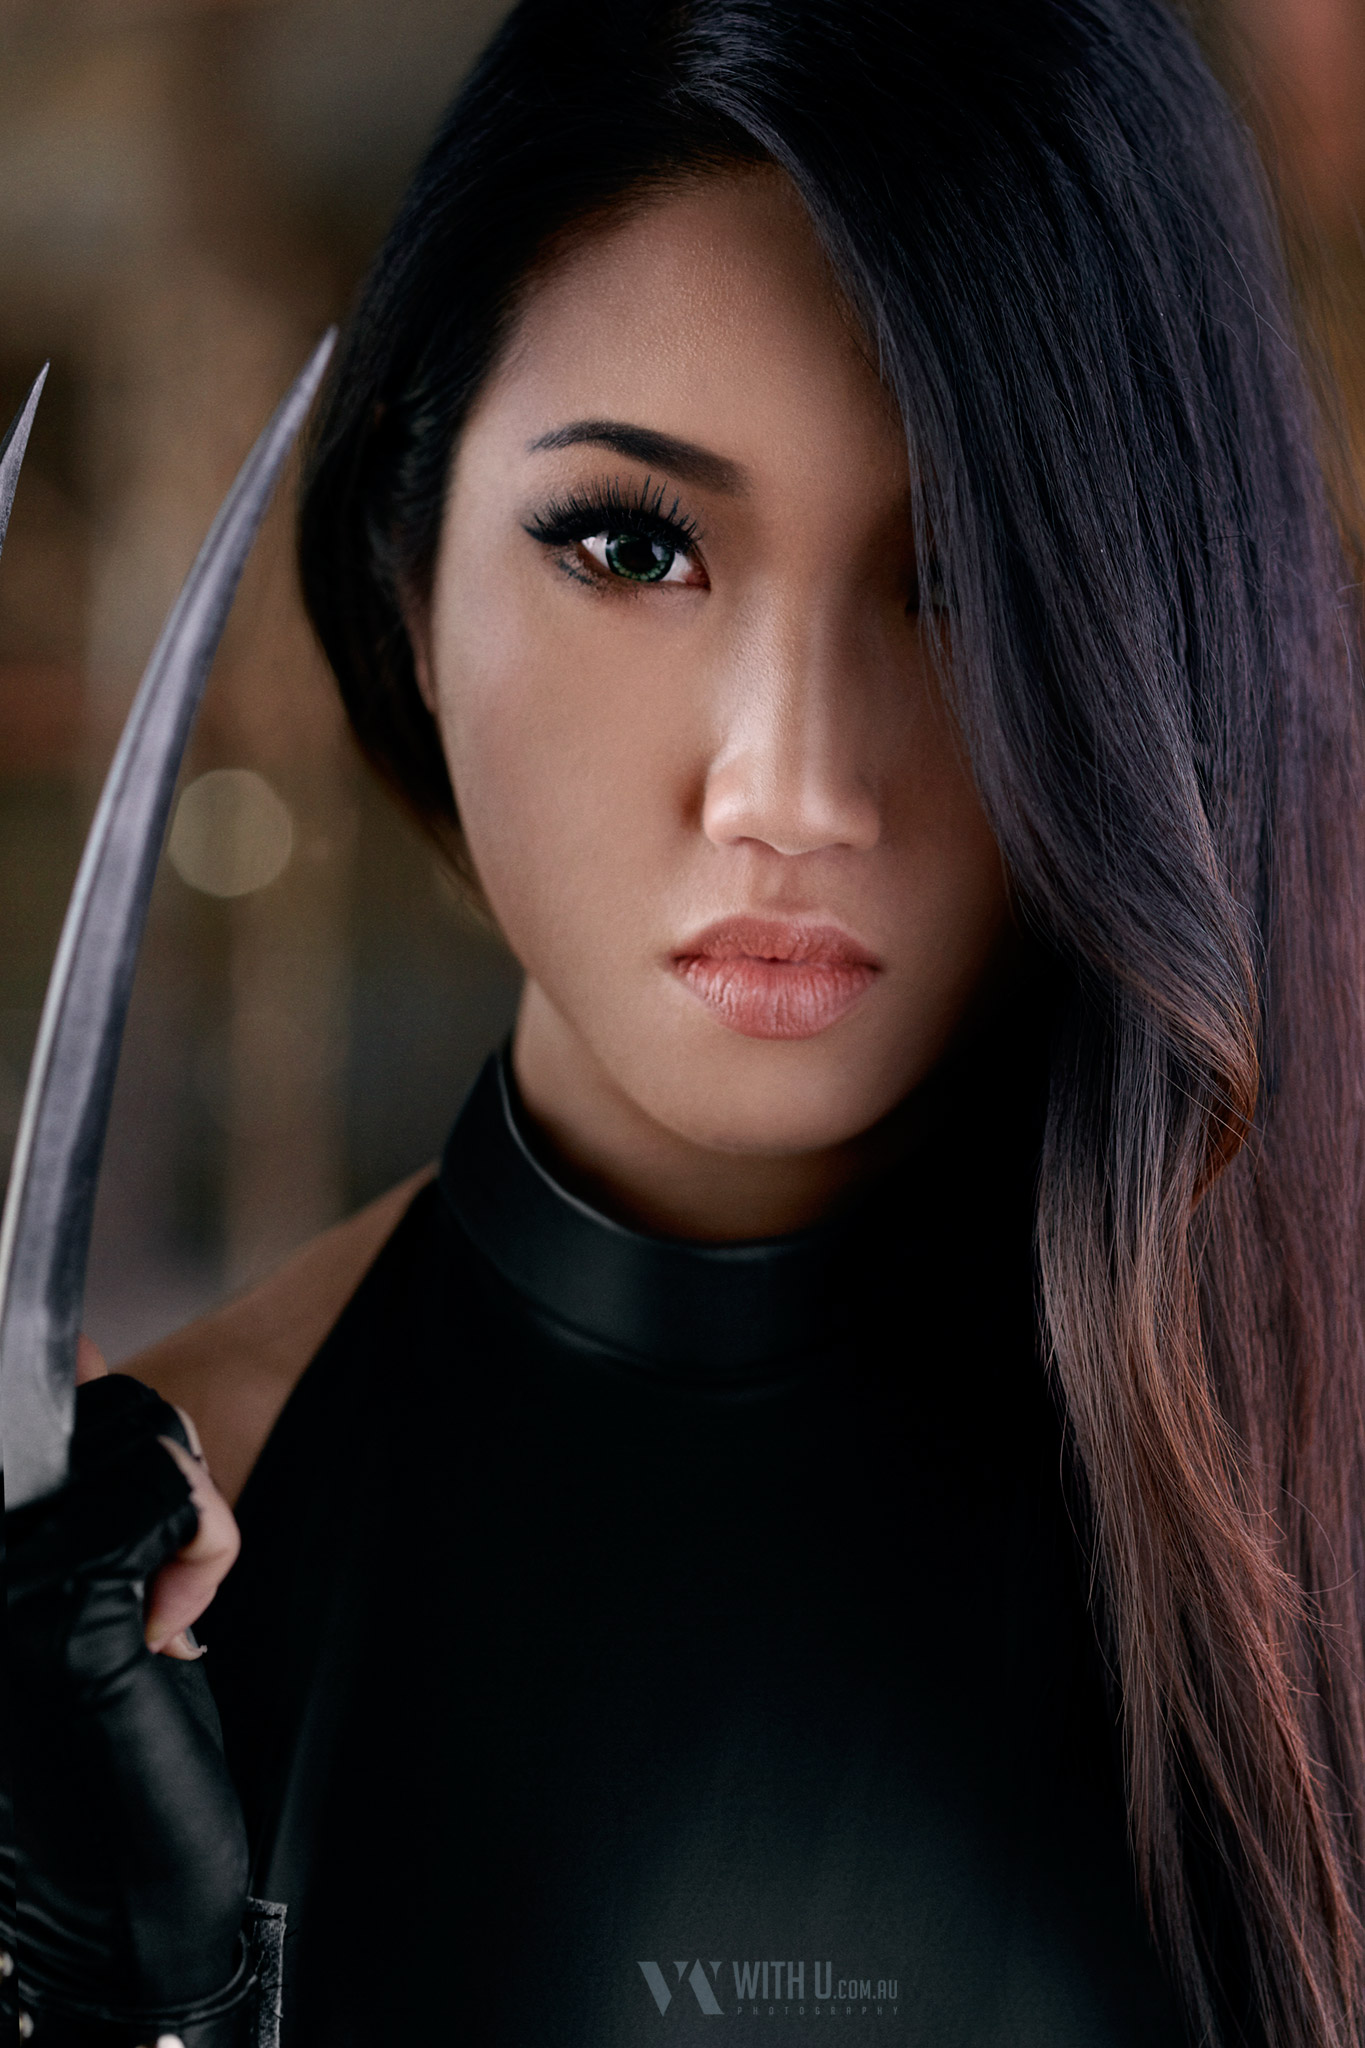 X-23-Perth-portraits-Cosplay-Withu-Photography-04-small